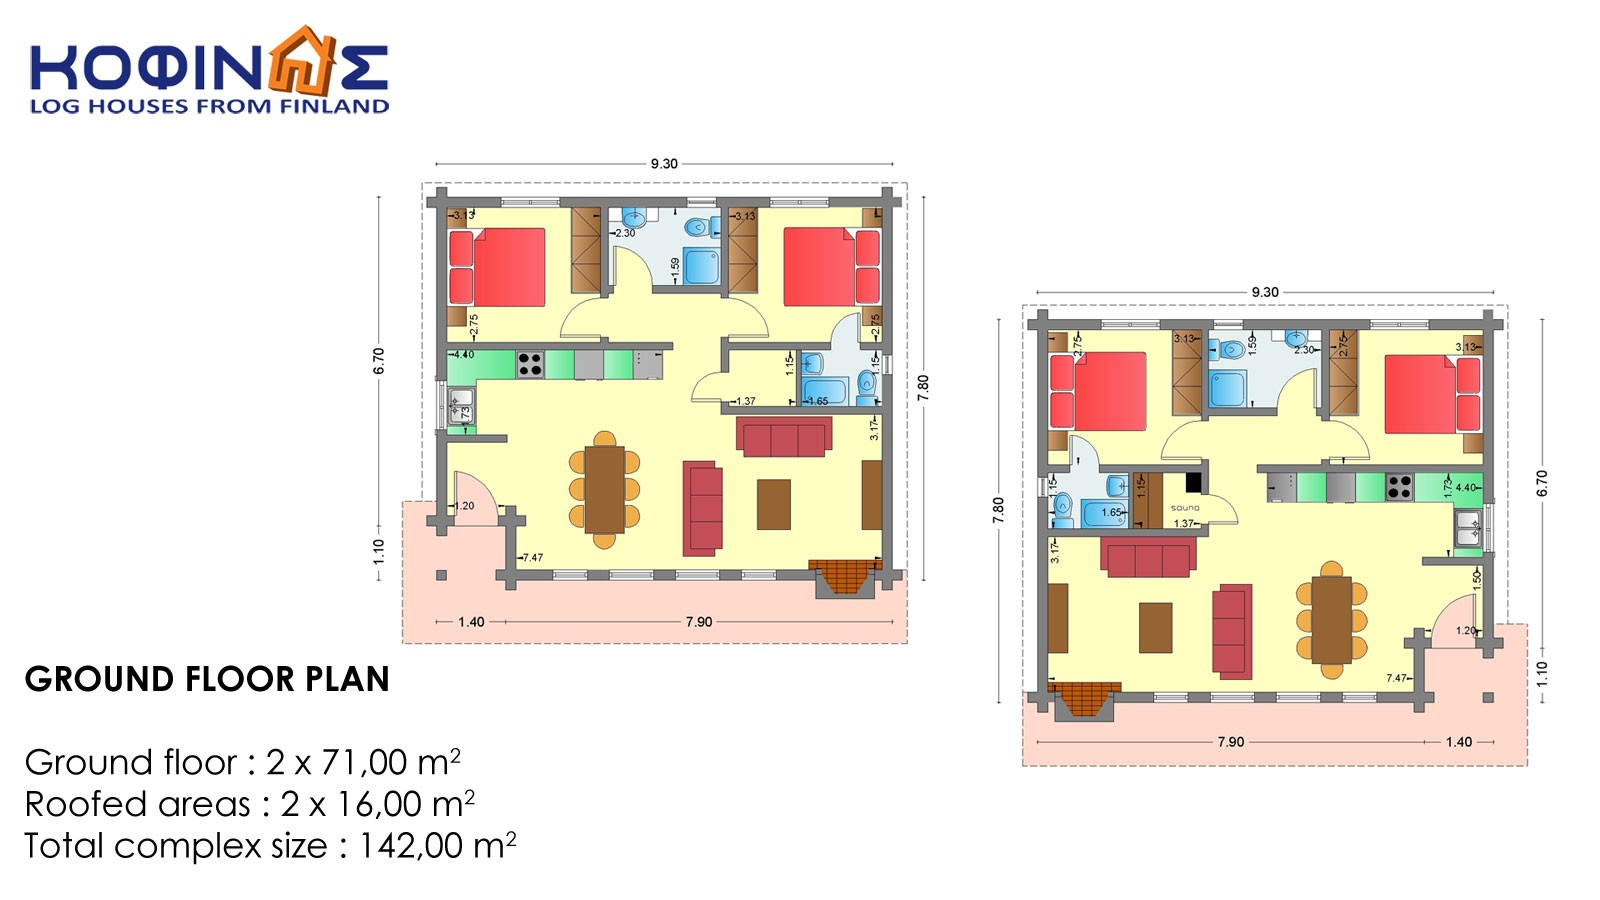 Complex of 2 log houses XI-71, total surface of 2 x 71 = 142,00 m²